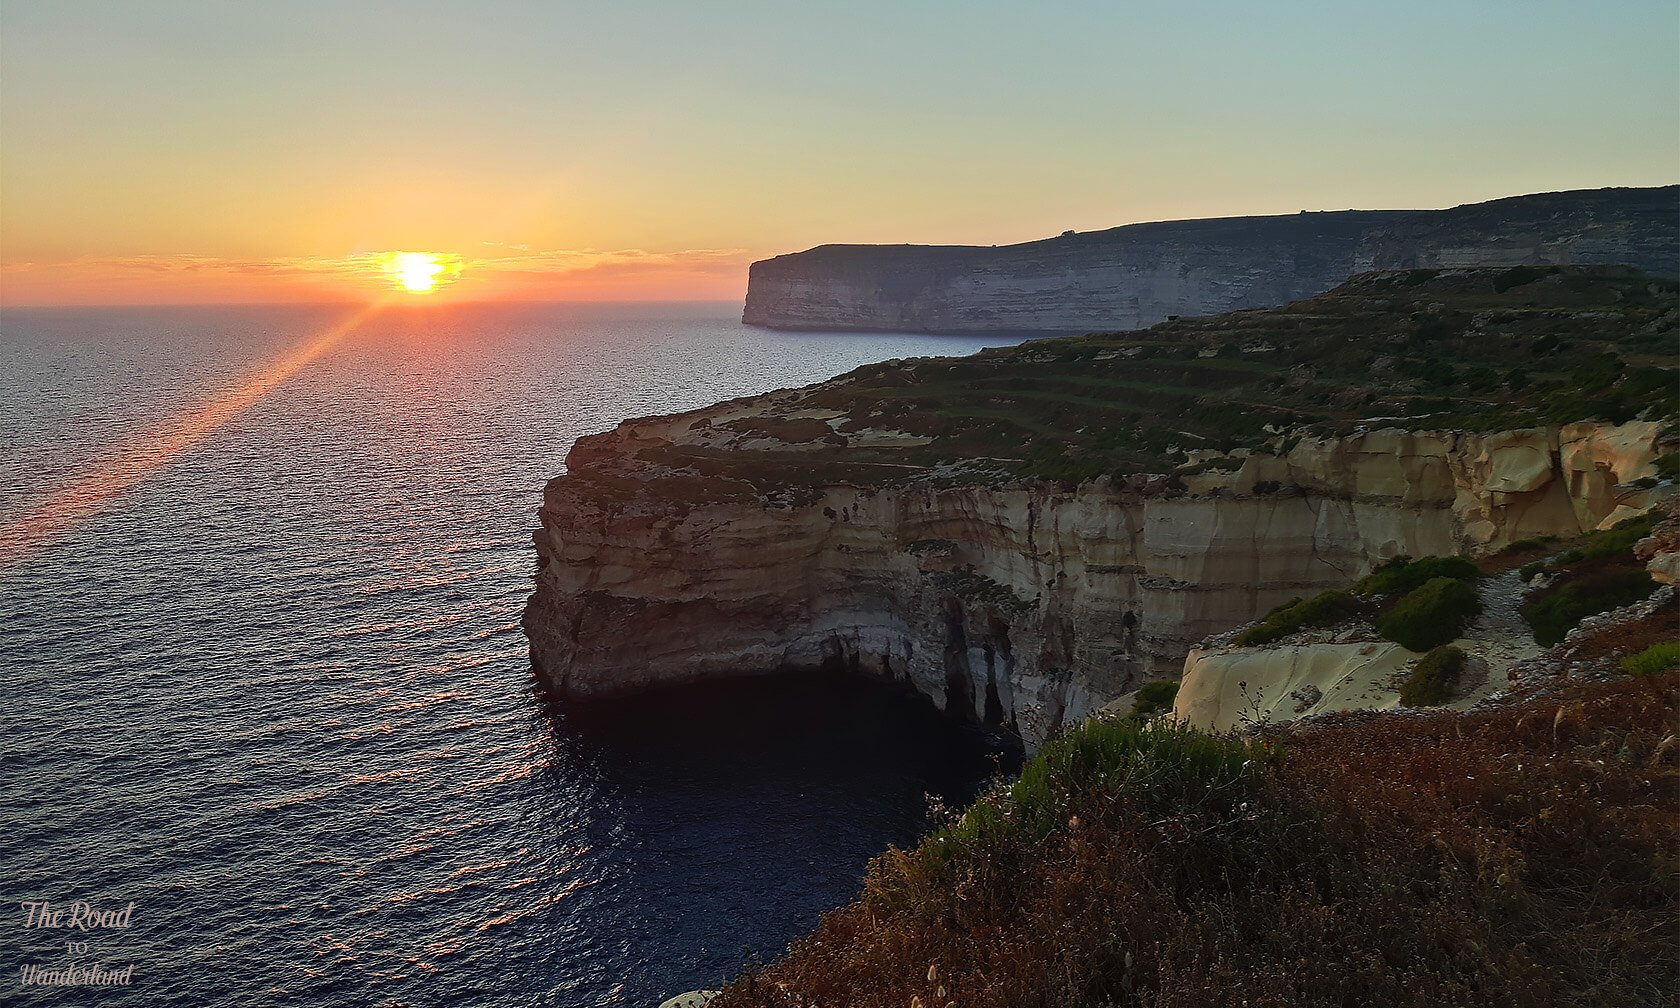 Sunset at Xlendi cliffs, Gozo